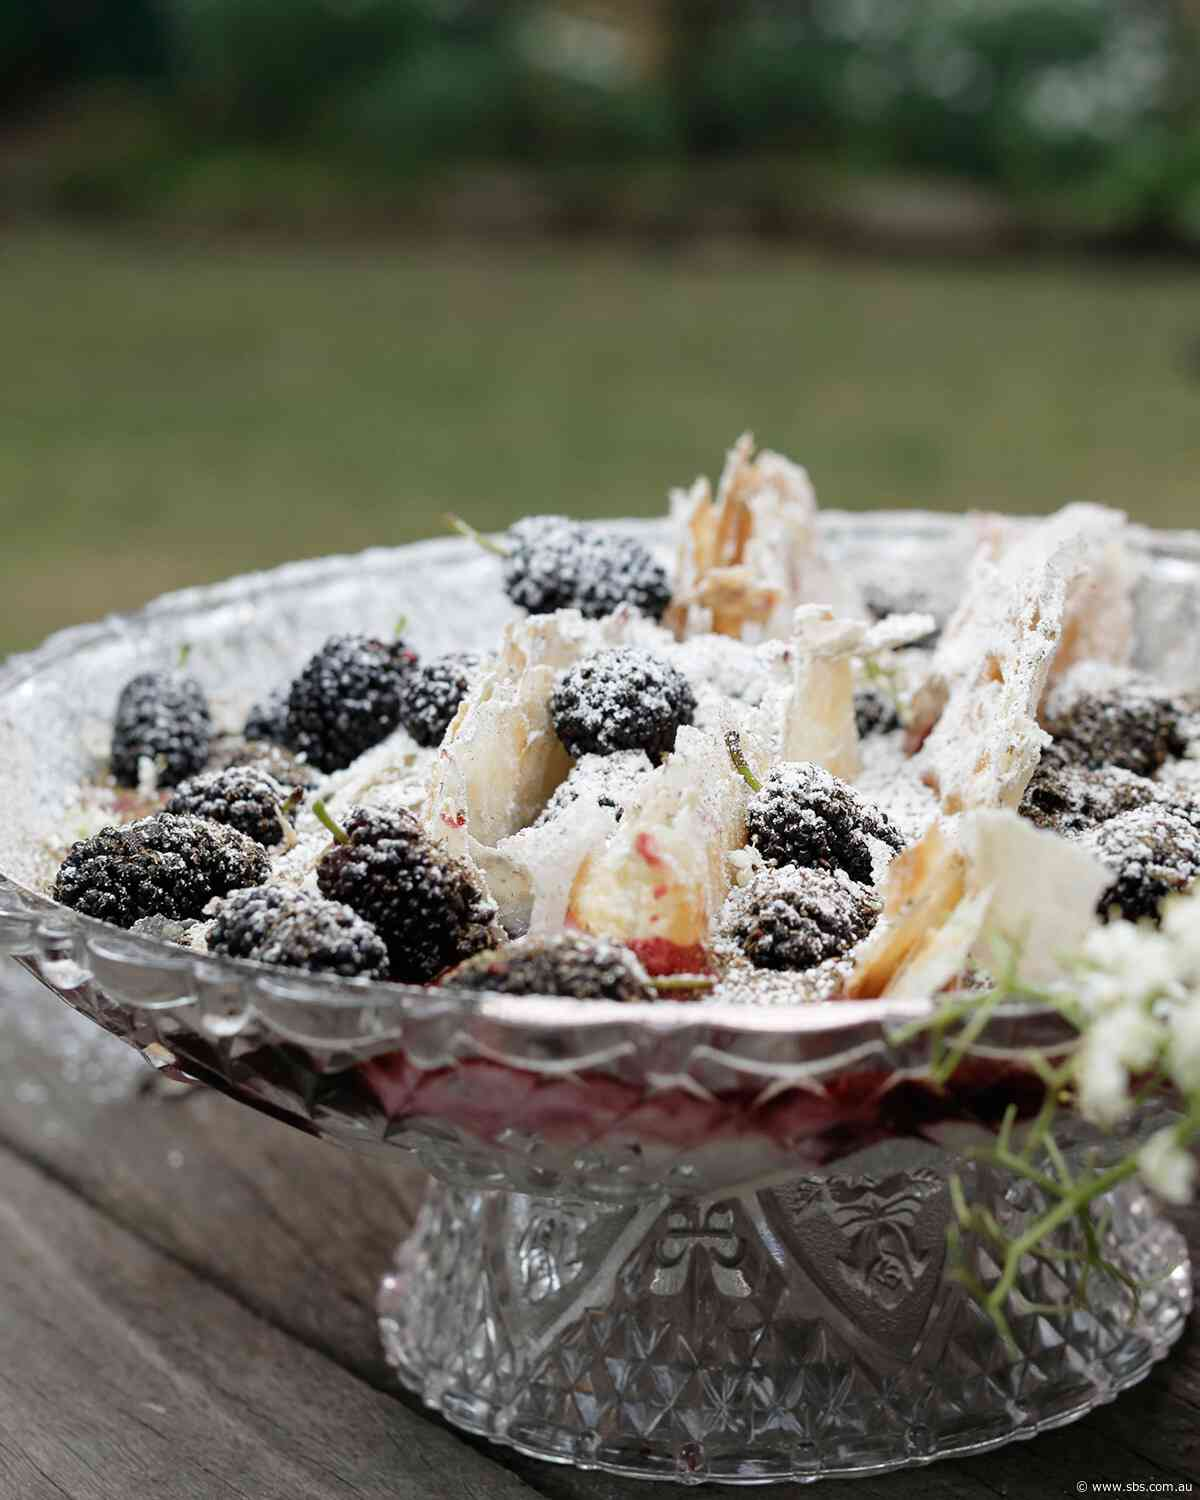 Mulberries with yoghurt and flaky pastry